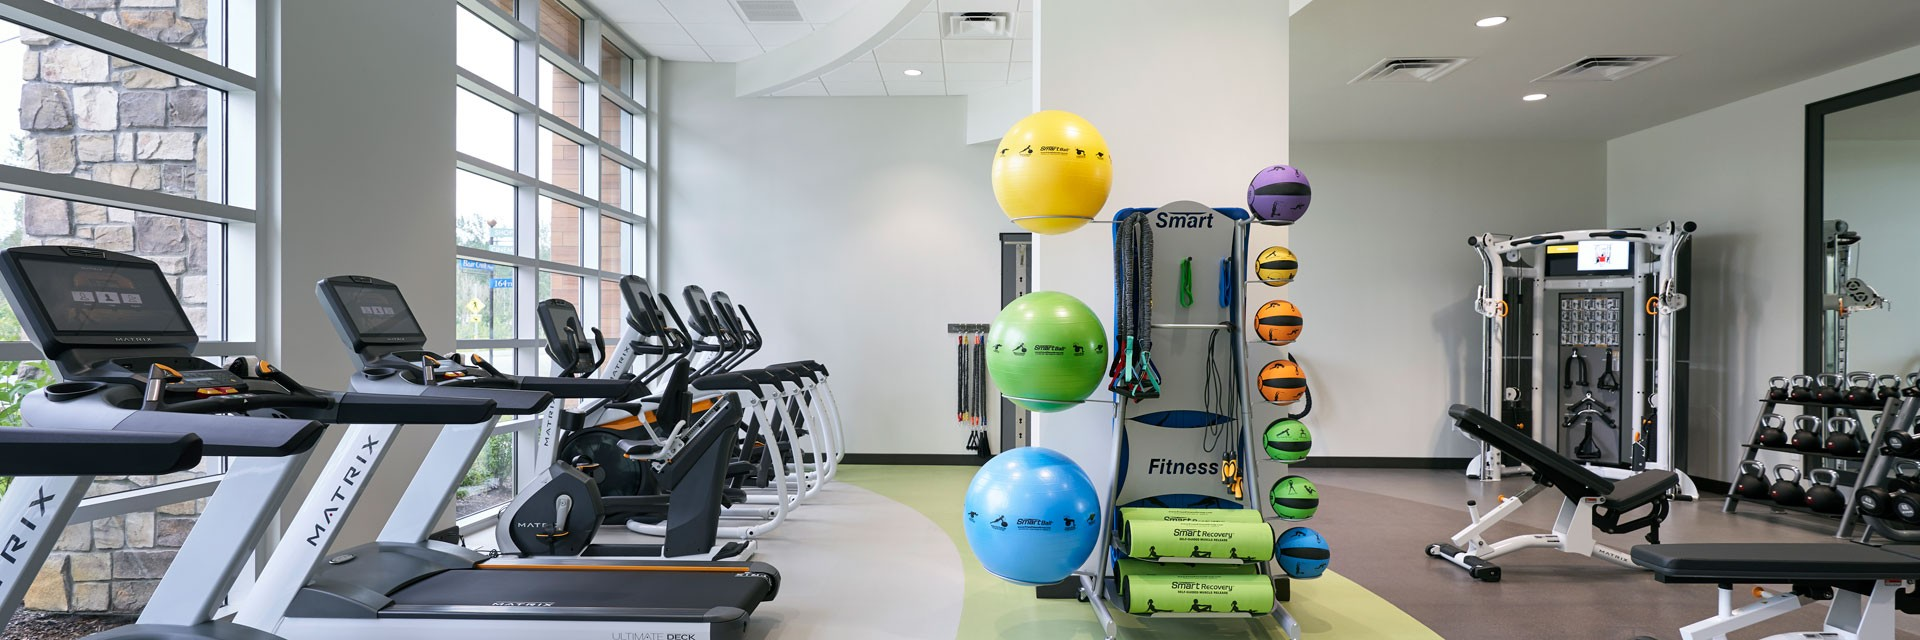 Archer Hotel Redmond - Fitness room with exercise equipment